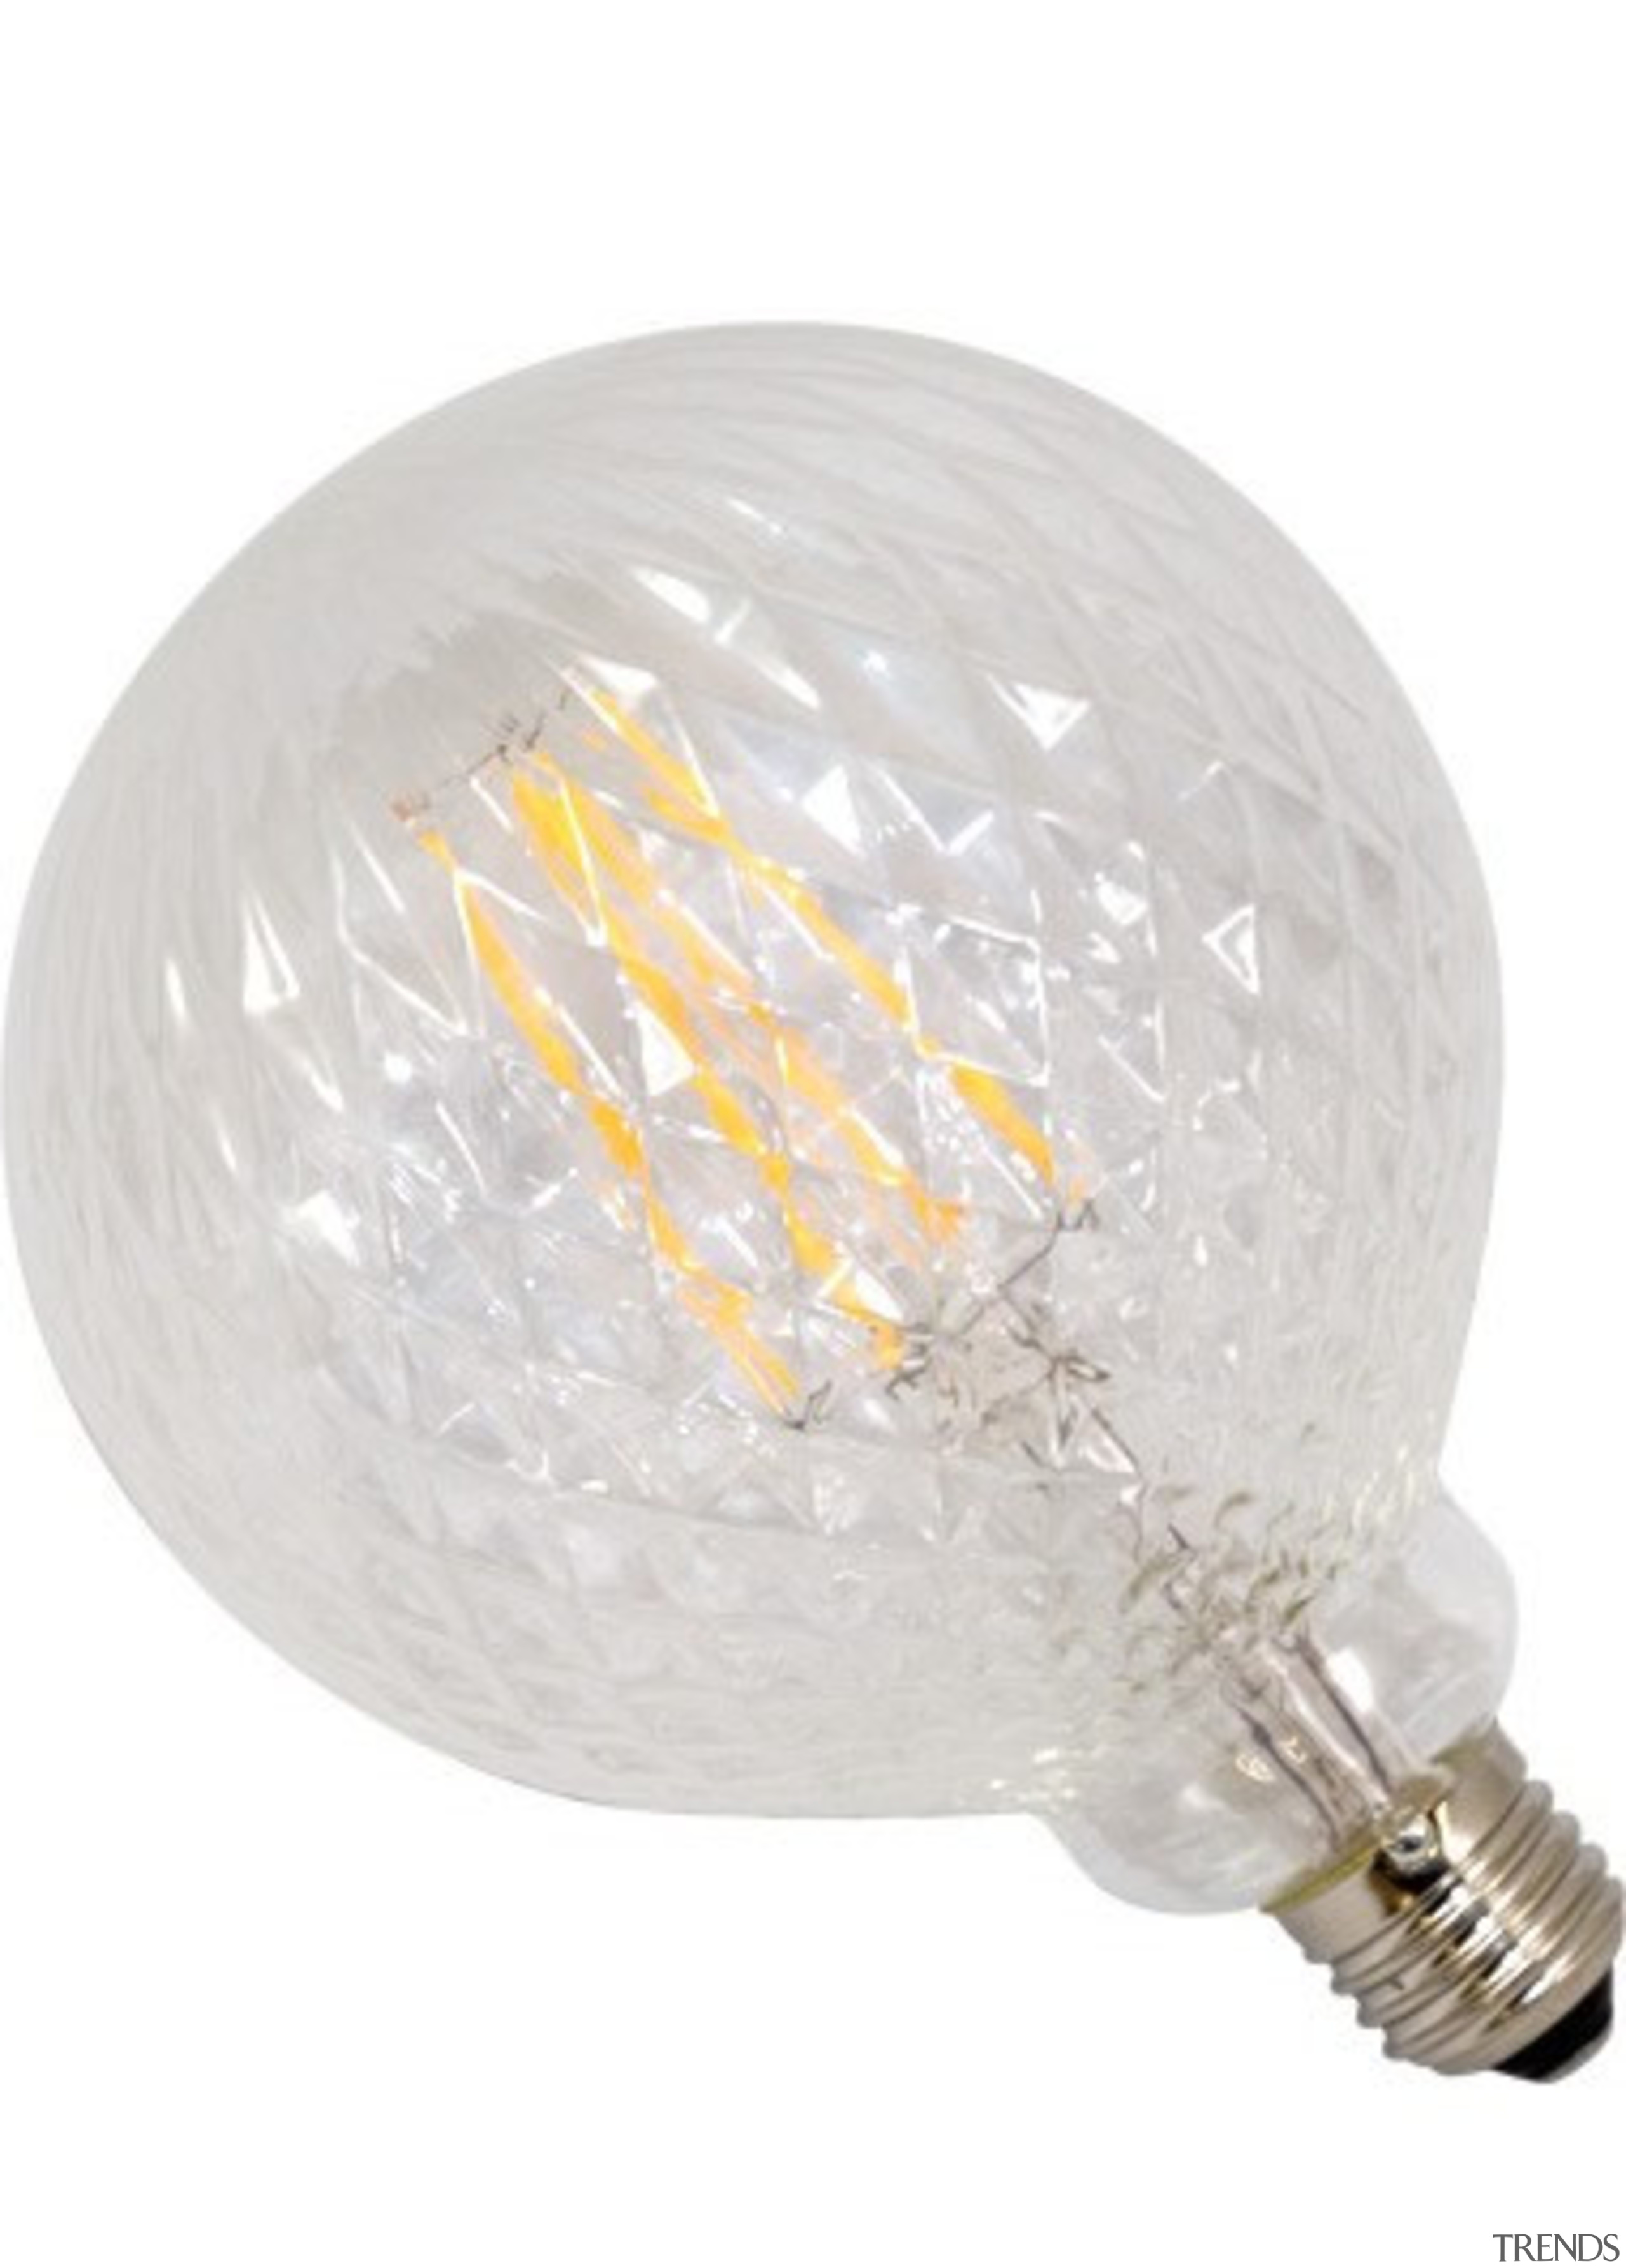 FeaturesThese lamps have a cut crystal style pattern white